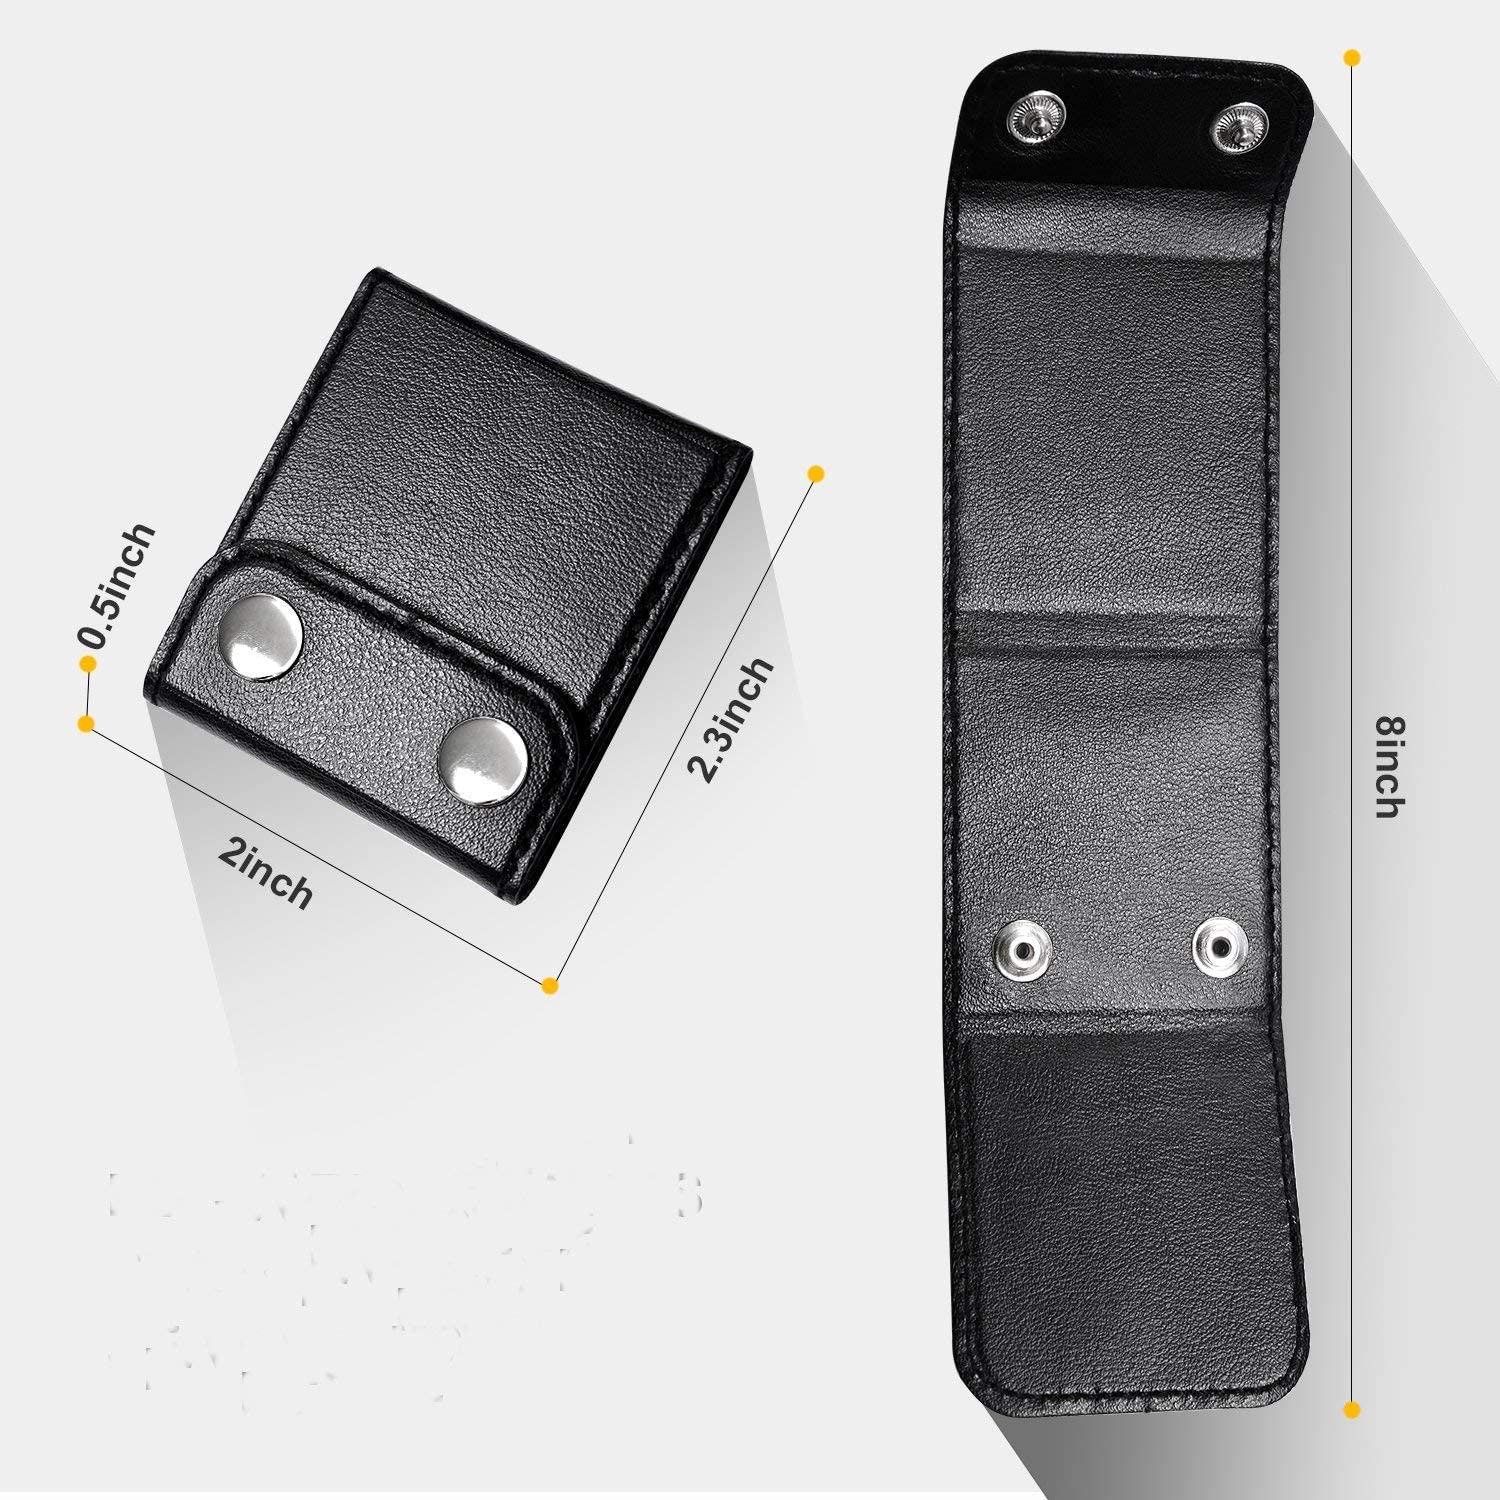 Kingwa Small and Cute Shape Seatbelt 2PCS Seatbelt Adjuster Black Use on The Car Seat Belt Safety Positioners Comfortable Auto Shoulder Neck Protector Locking Clip Cover High- Quality Leather